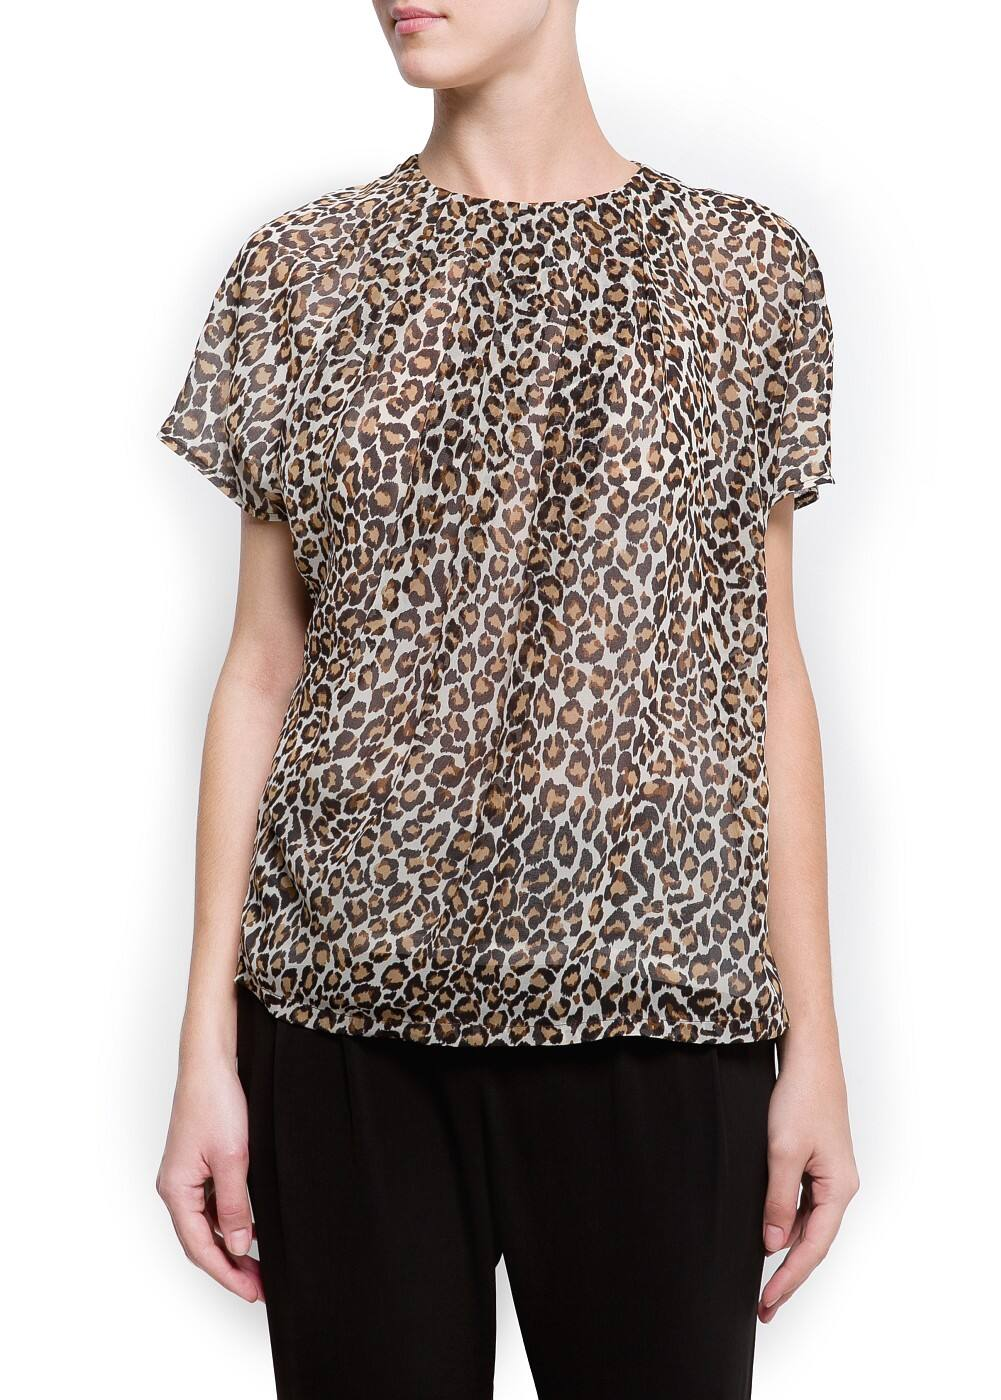 Animal print pleated t-shirt